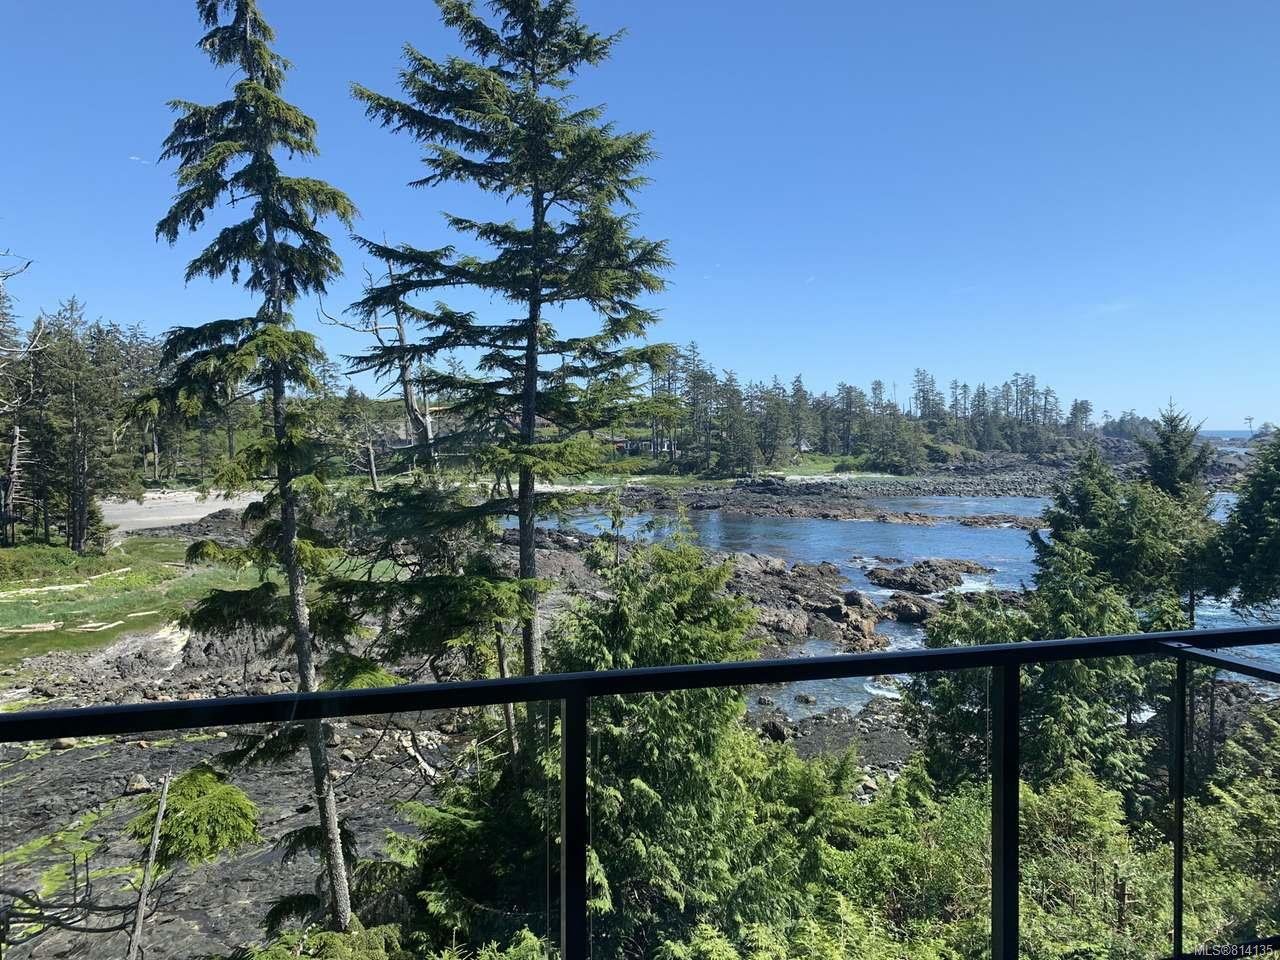 Main Photo: 306 596 Marine Dr in UCLUELET: PA Ucluelet Condo for sale (Port Alberni)  : MLS®# 814135